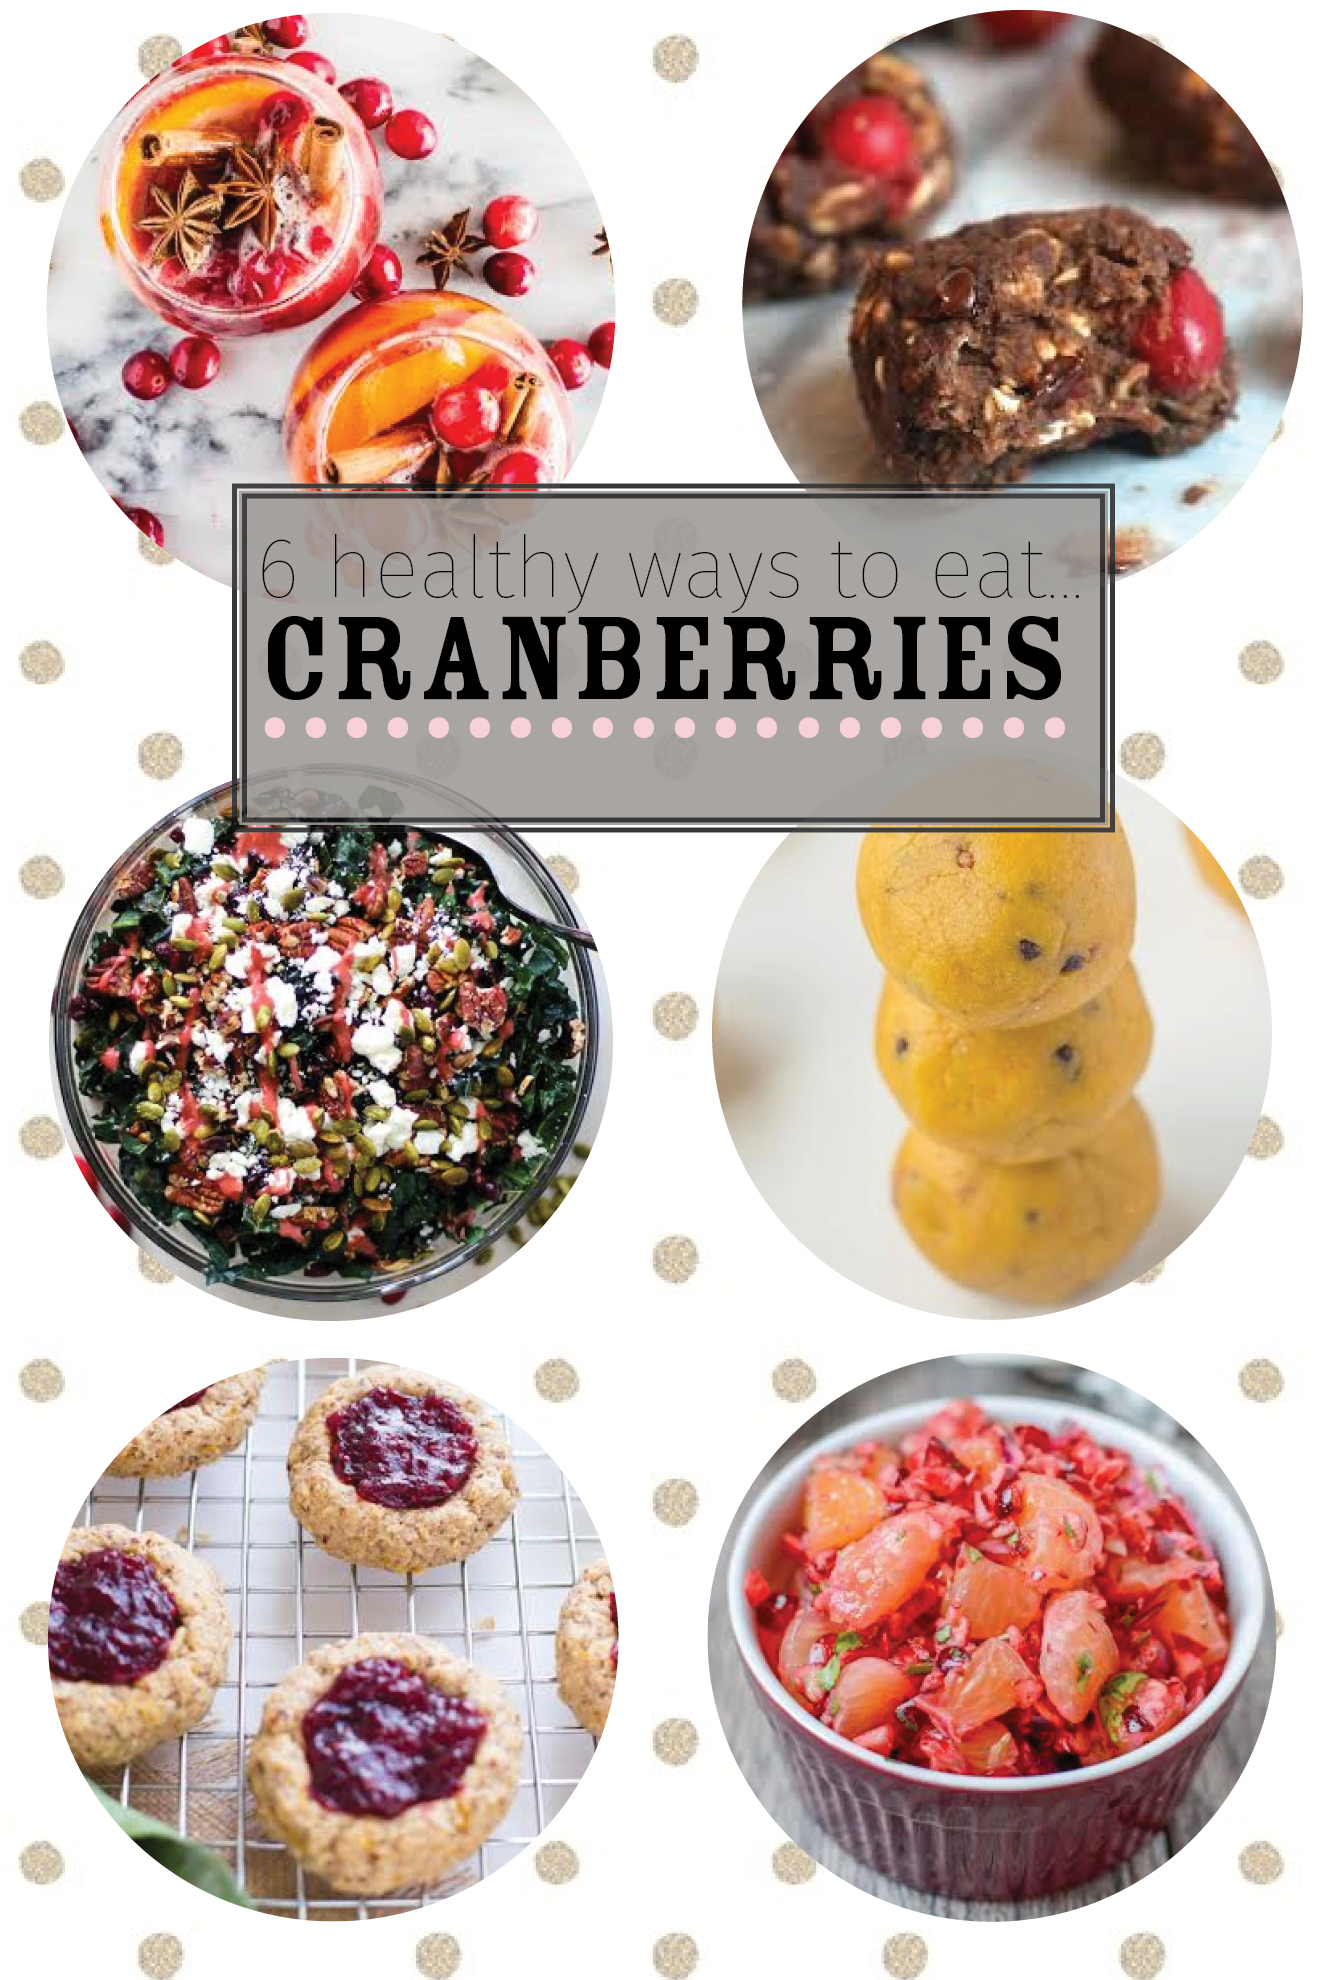 6 Healthy Ways to Eat Cranberries | immaEATthat.com